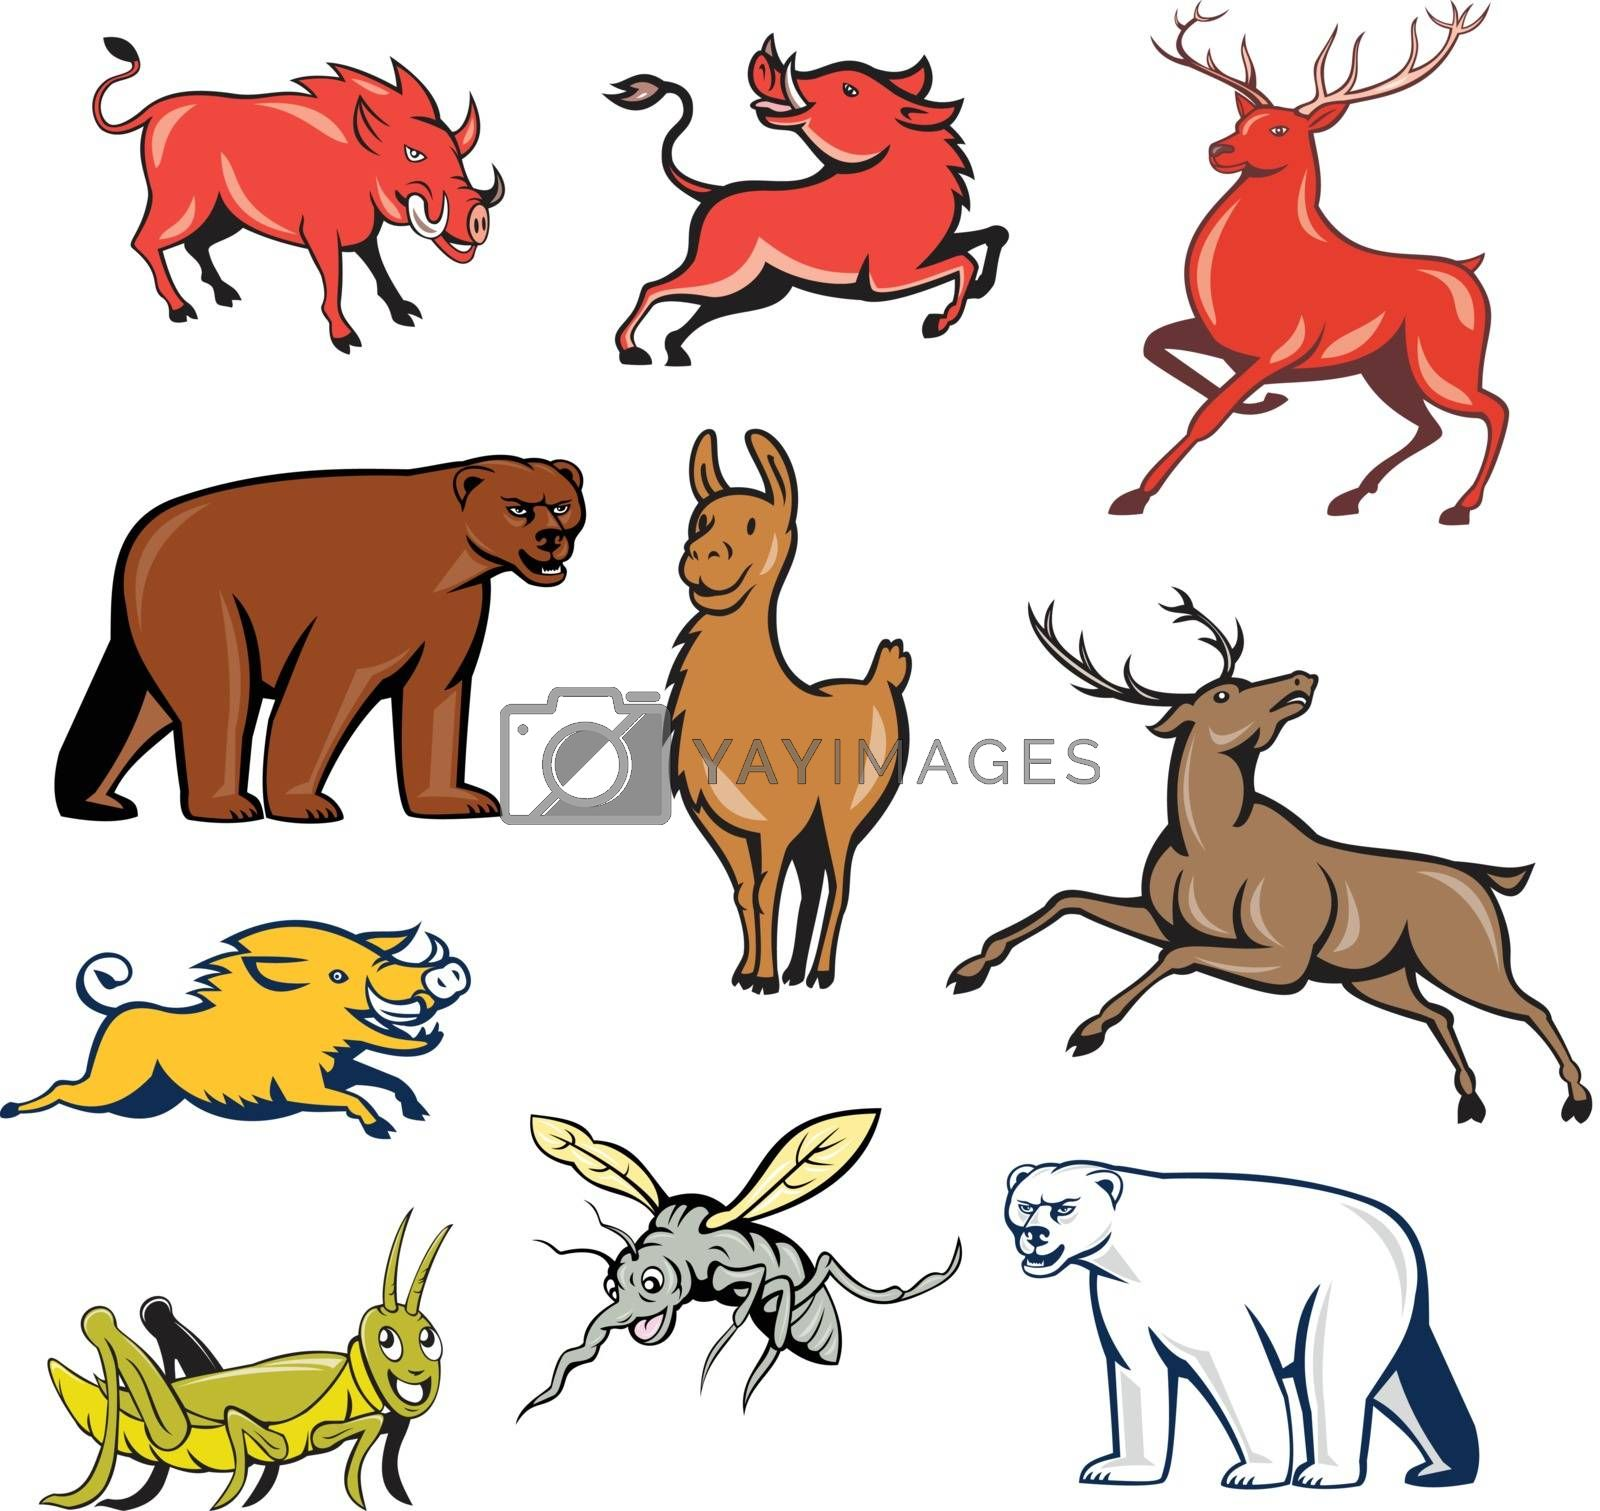 Set or collection of cartoon character mascot style illustration of wildilfe animals like wild boar, razorback, red deer, reindeer, llama, alpaca, bear, polar bear, grasshopper and mosquito on isolated white background.